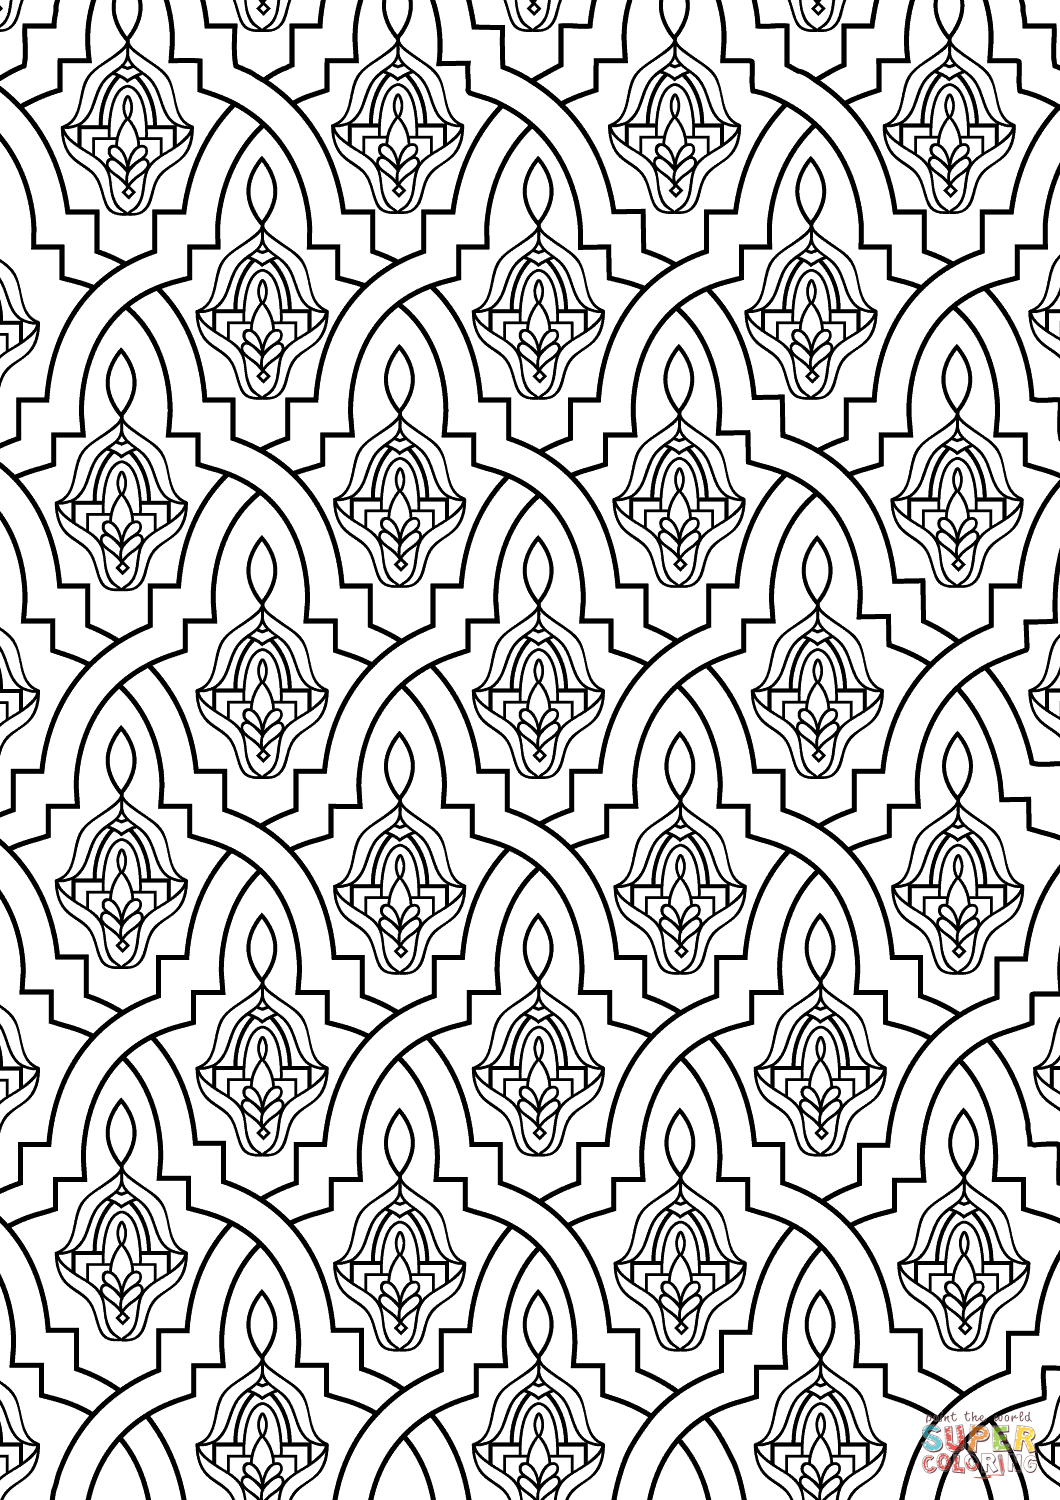 Moroccan Tile Coloring Page | Free Printable Coloring Pages - Free Printable Moroccan Pattern